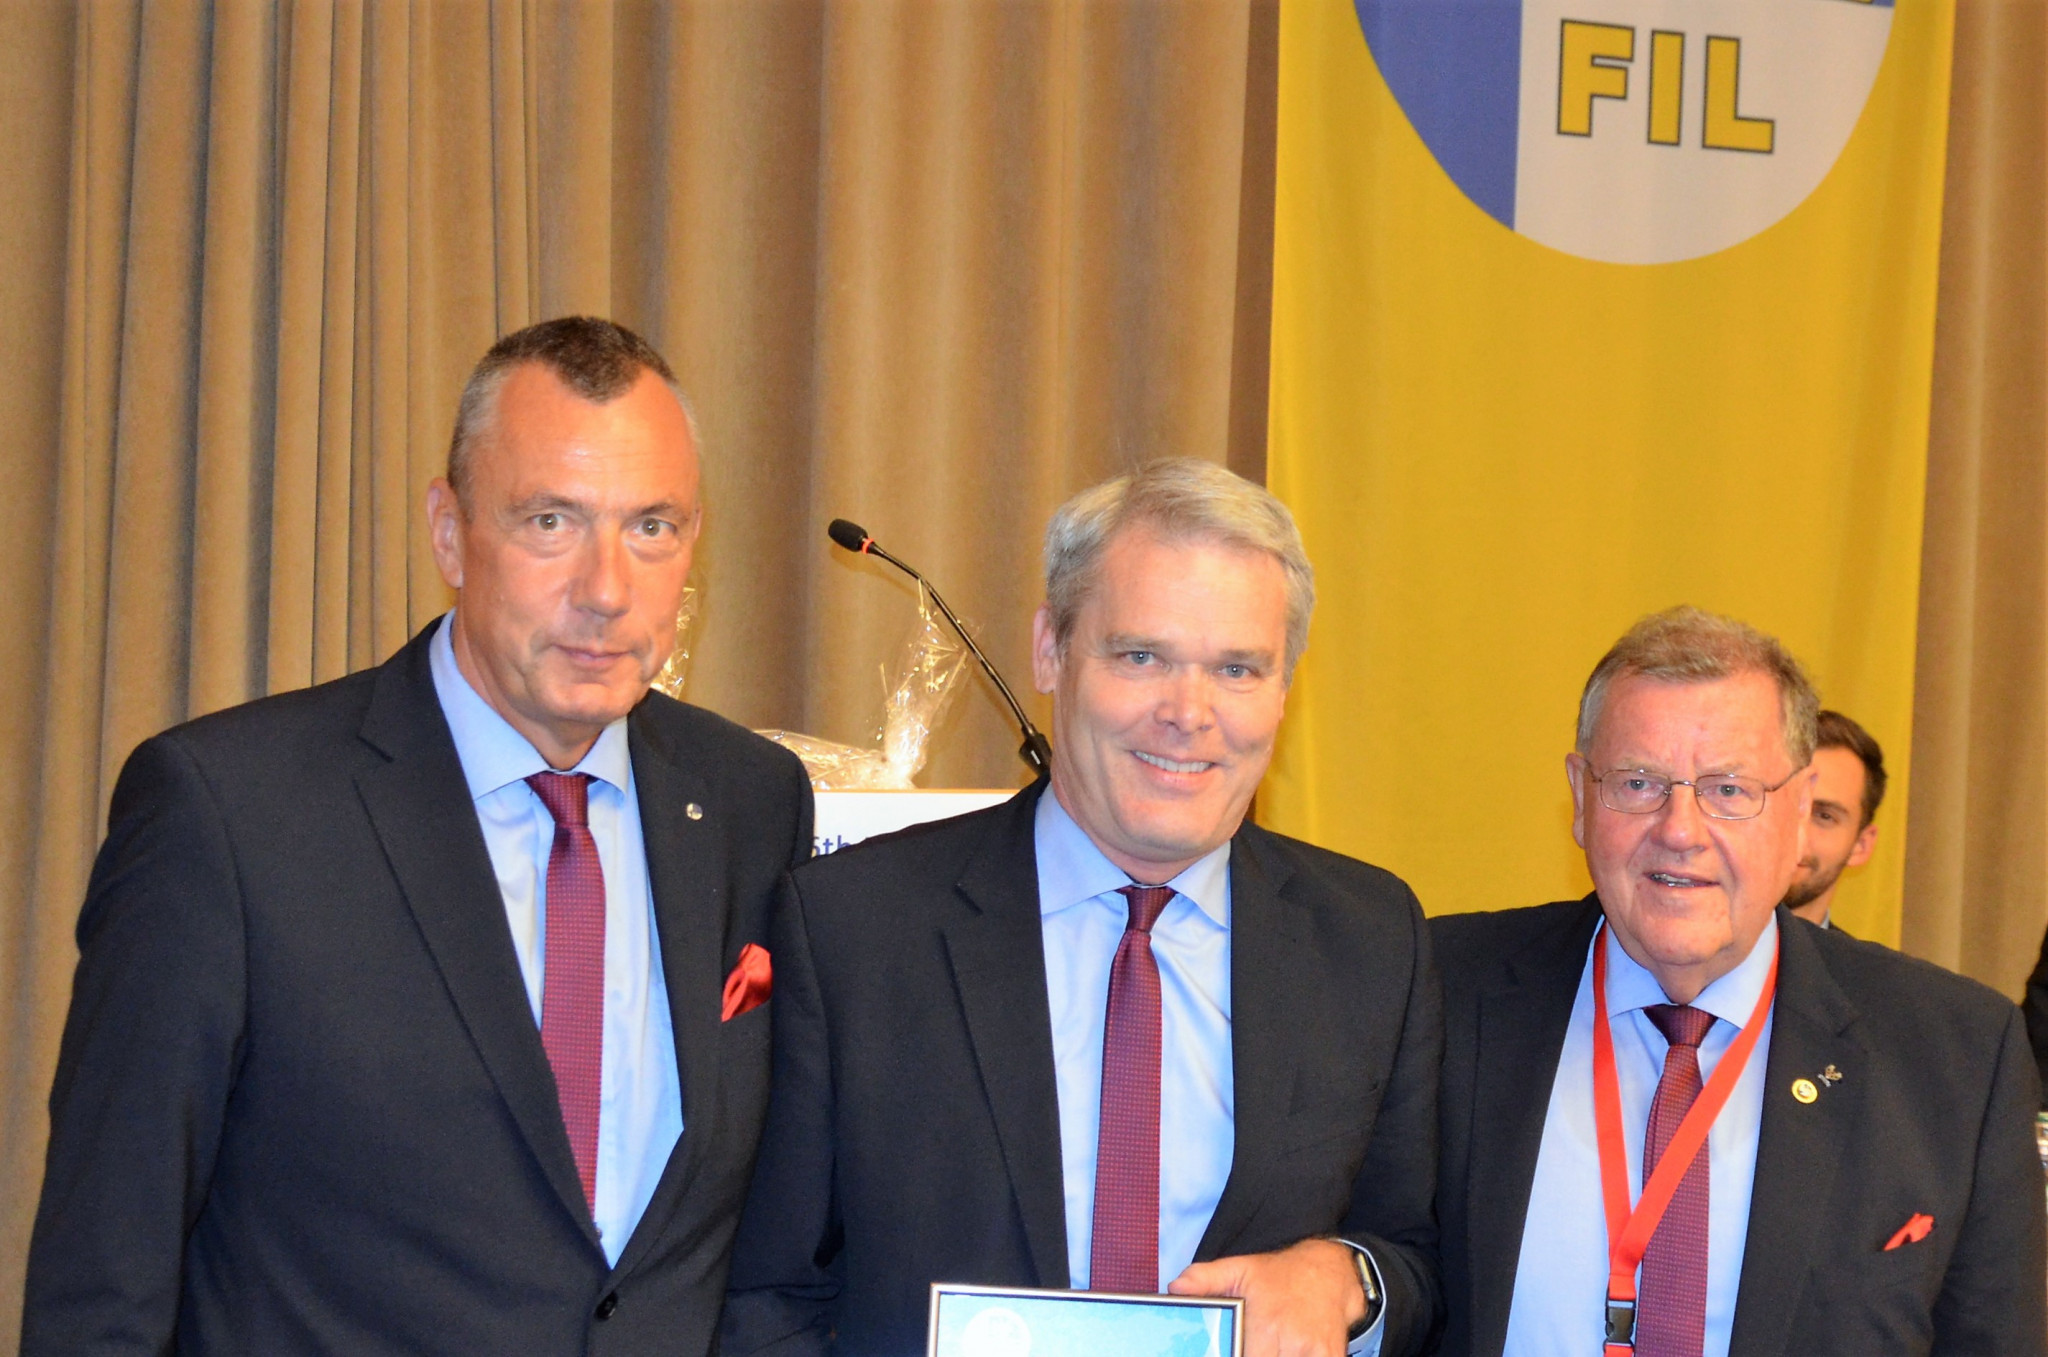 Departing secretary general Svein Romstad, centre, has been named an honorary member of the International Luge Federation ©FIL